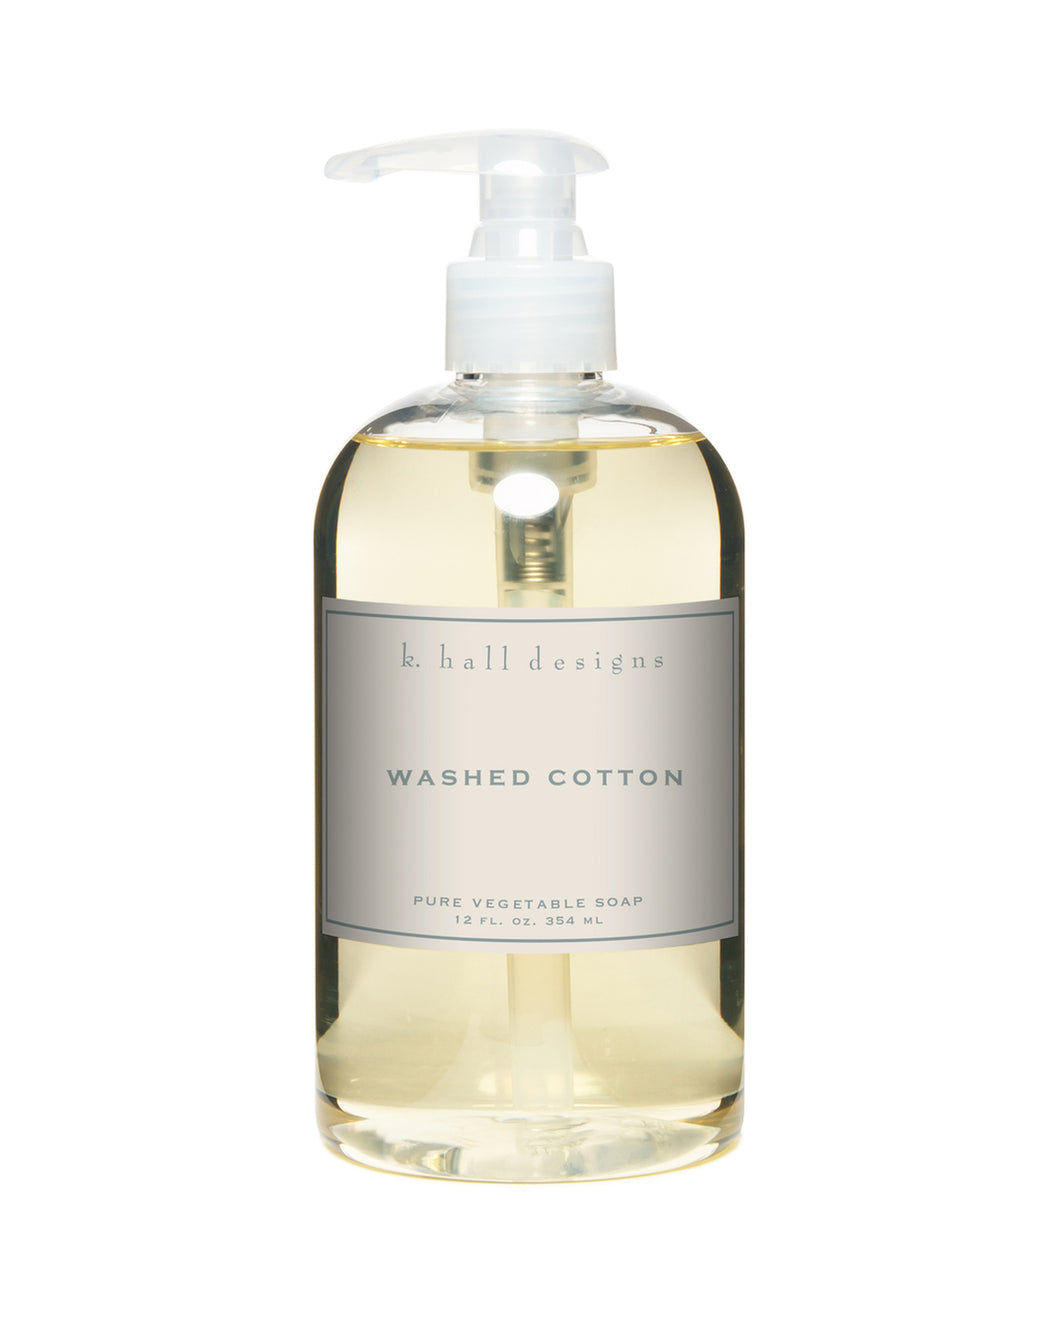 Washed Cotton 12oz Hand Soap